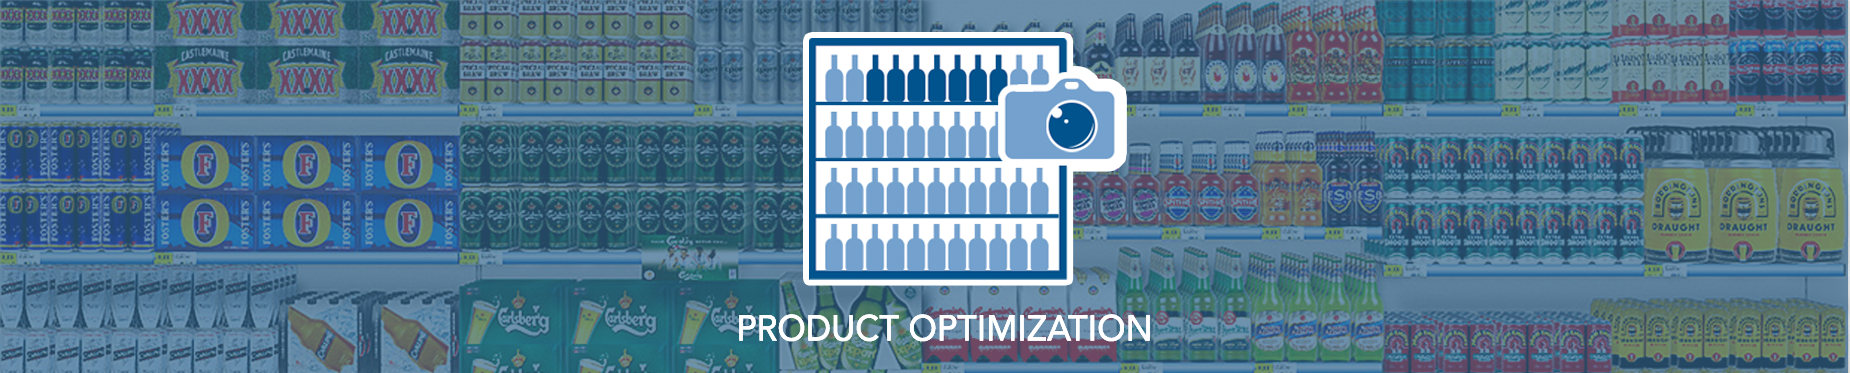 product_optimization_1